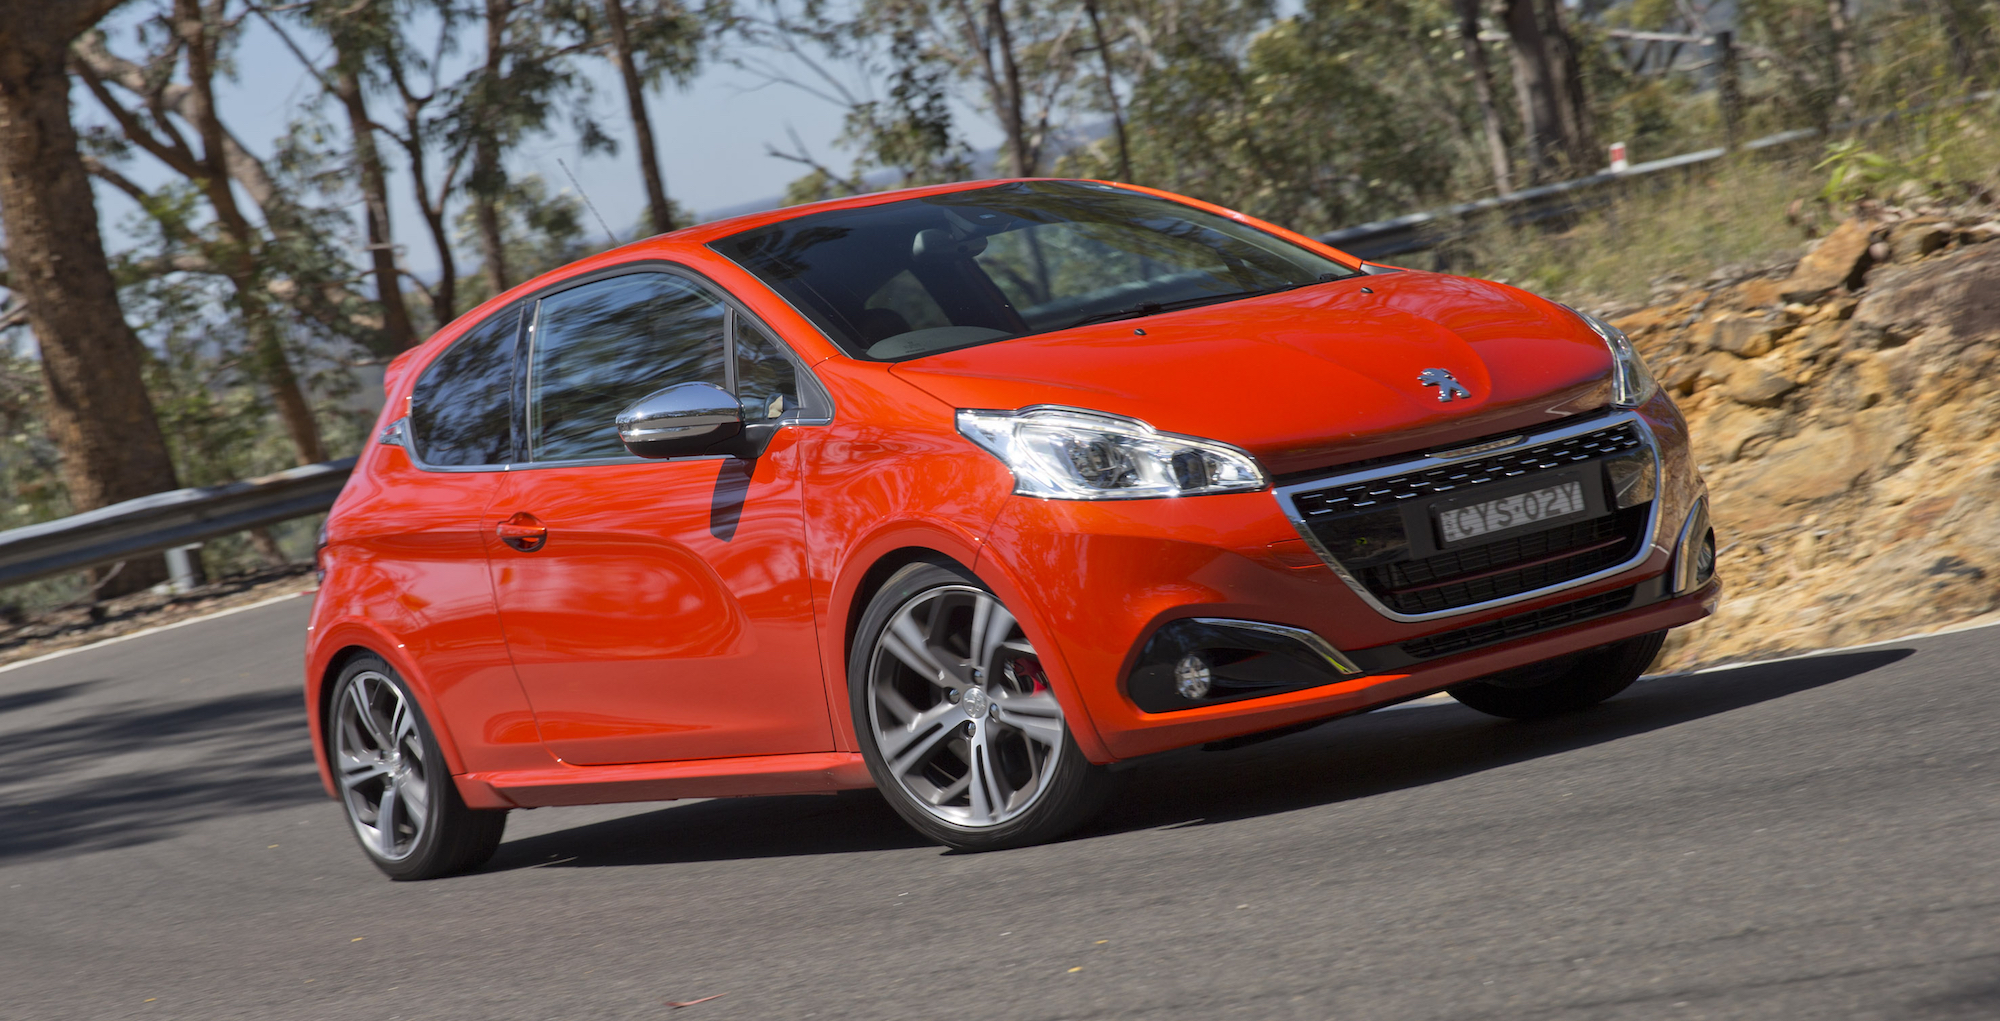 2016 Peugeot 208 Review - Photos